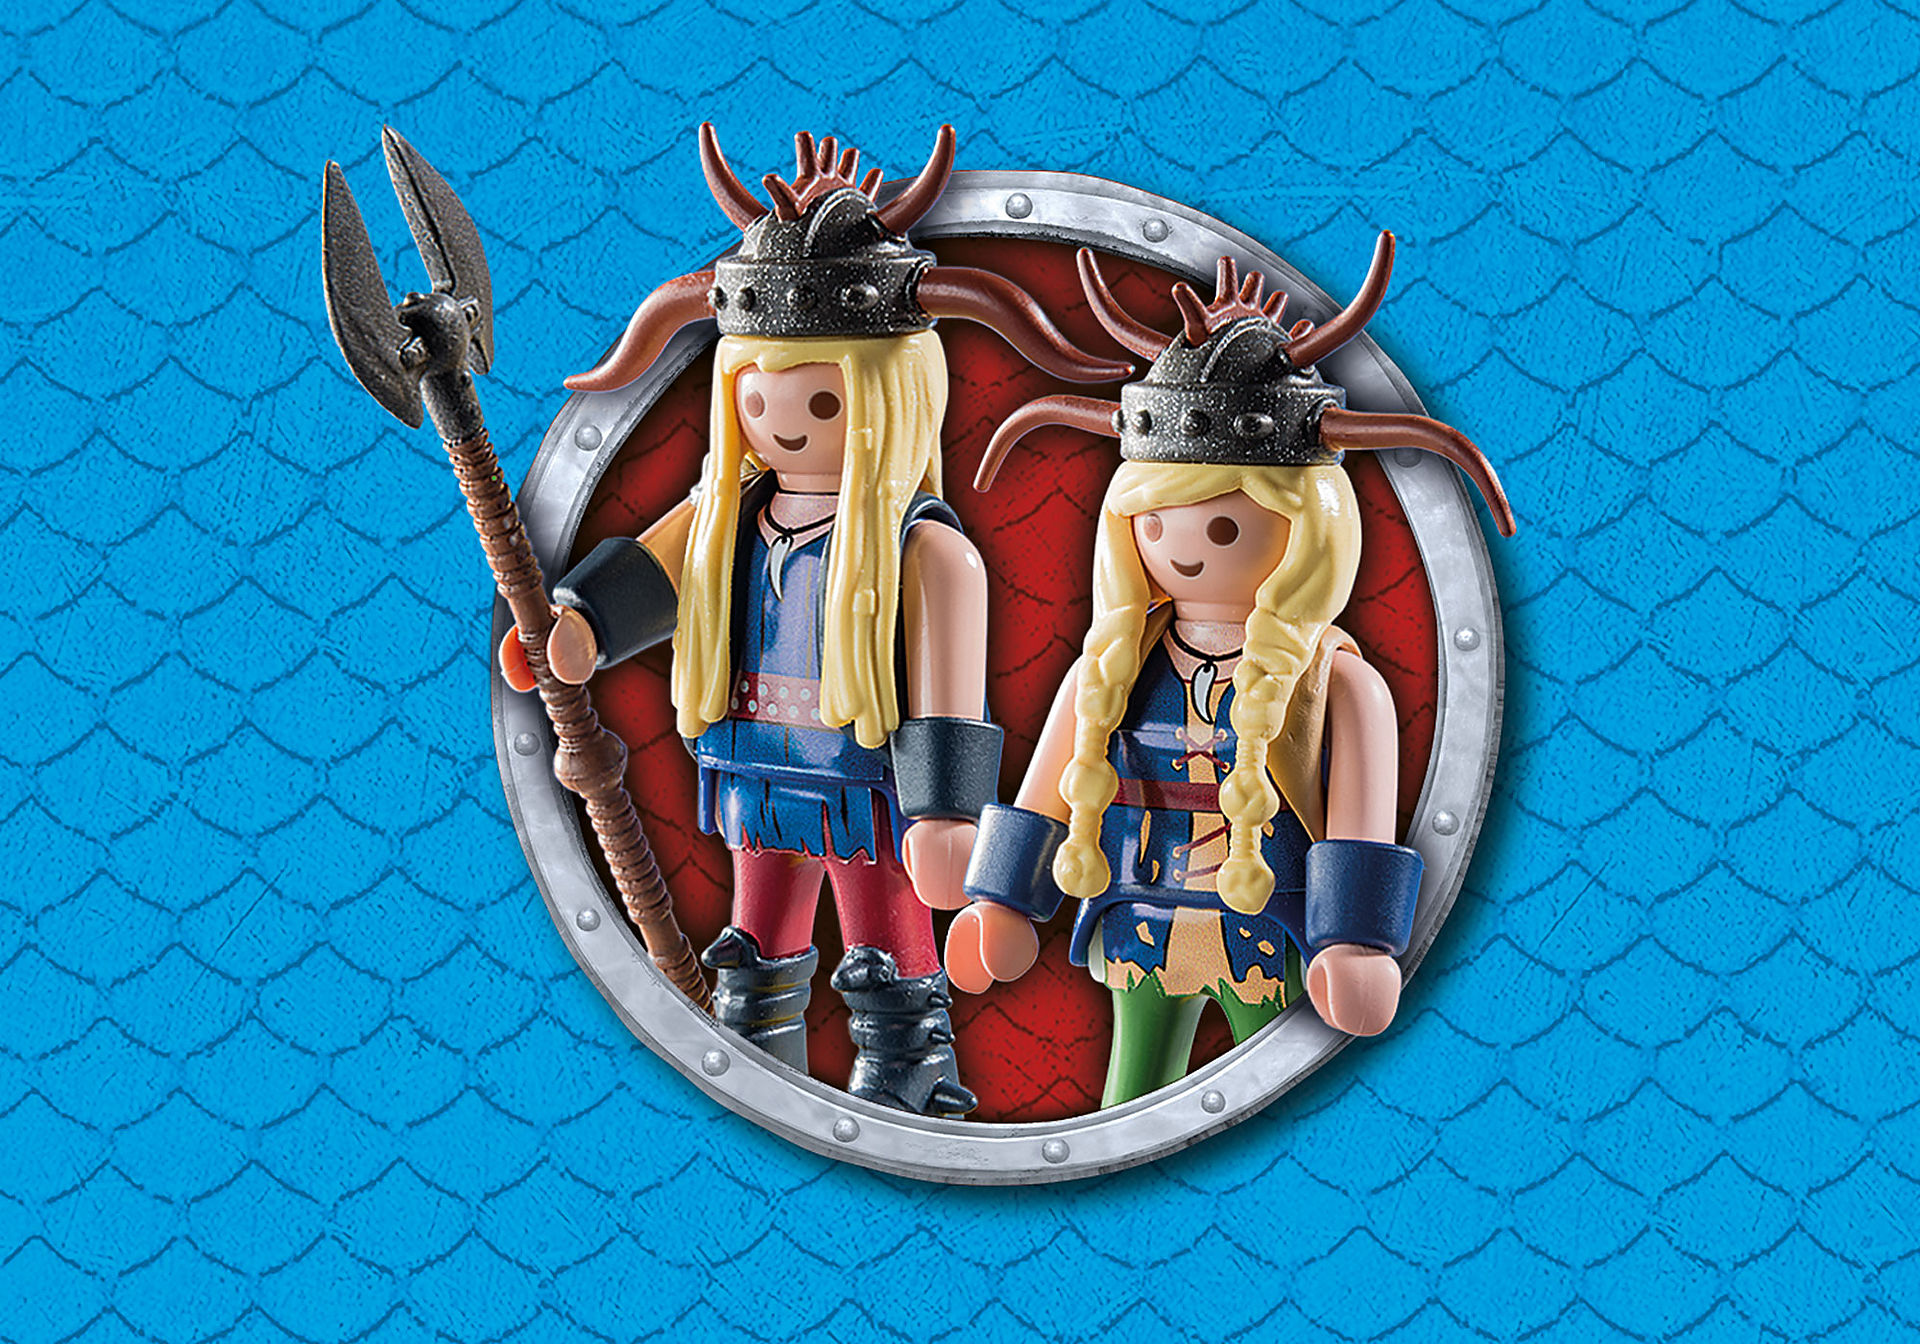 http://media.playmobil.com/i/playmobil/9458_product_extra3/Ruffnut and Tuffnut with Barf and Belch